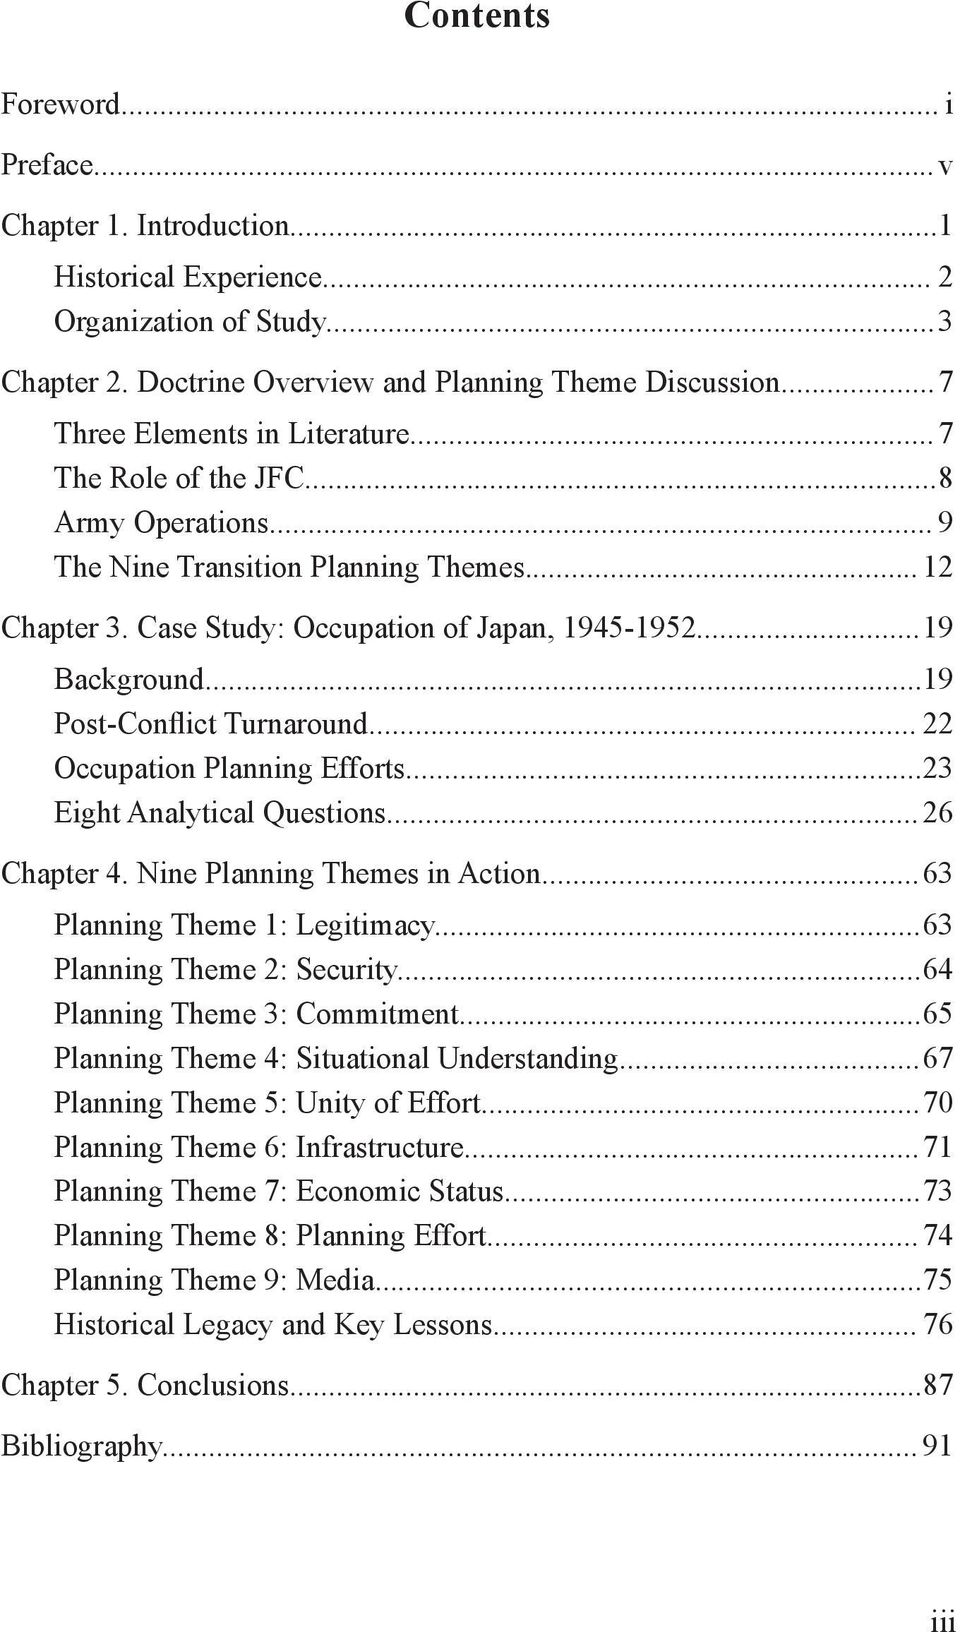 .. 19 Post-Conflict Turnaround... 22 Occupation Planning Efforts...23 Eight Analytical Questions... 26 Chapter 4. Nine Planning Themes in Action... 63 Planning Theme 1: Legitimacy.